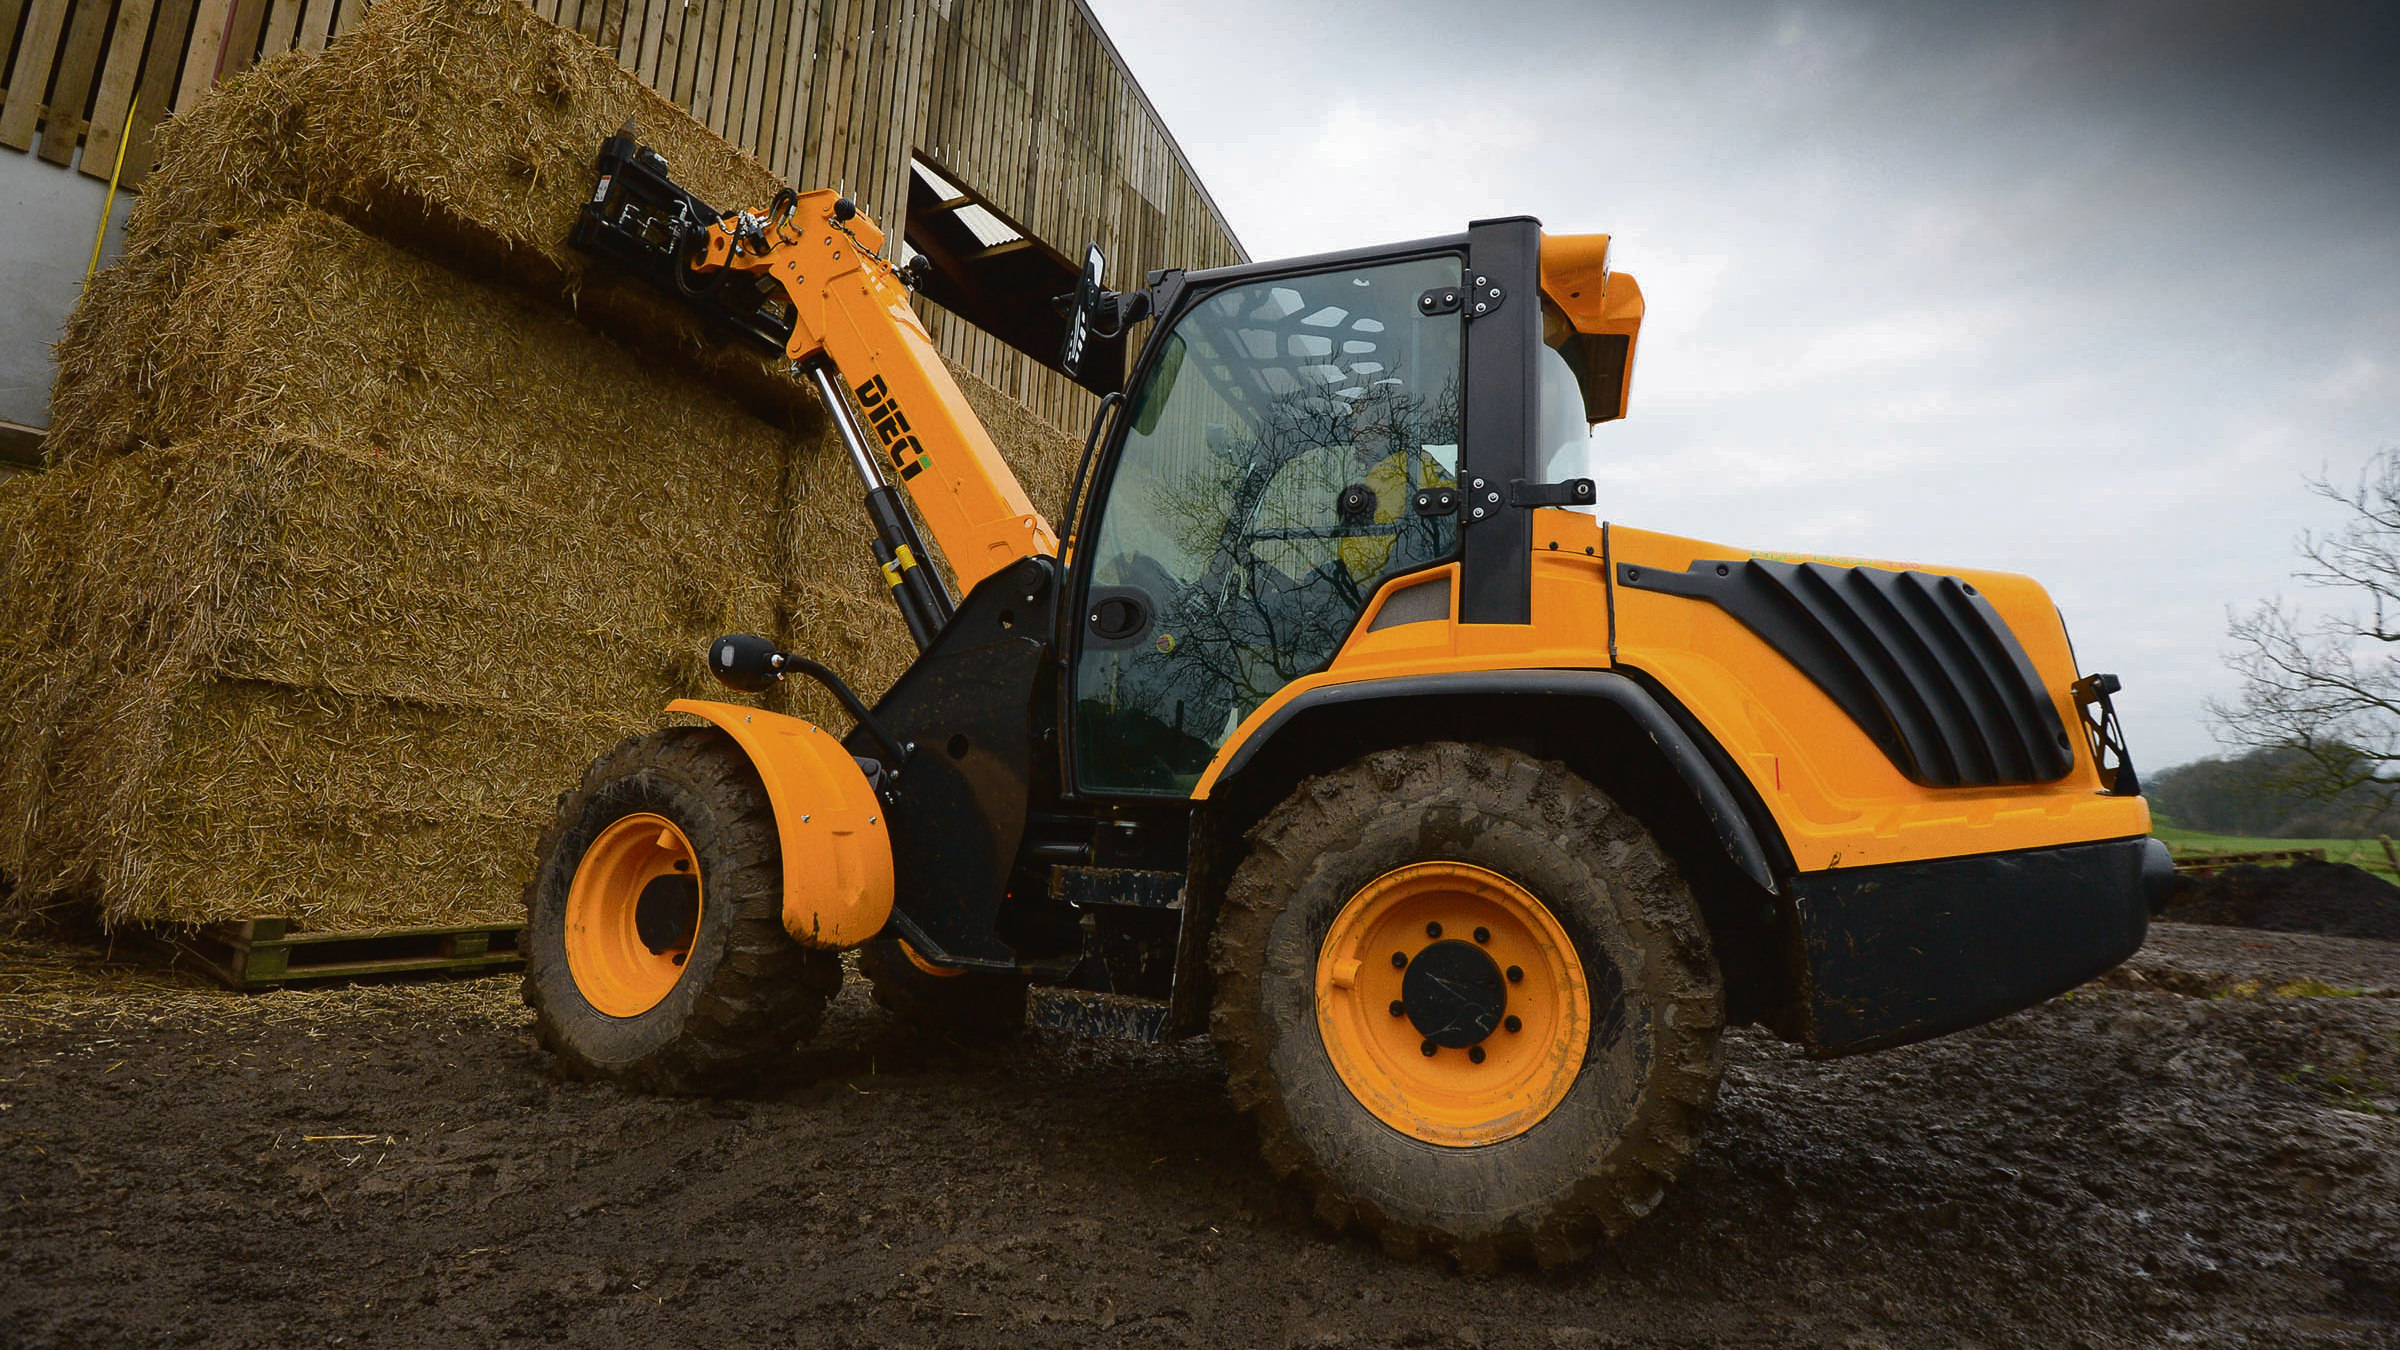 On test: New contender to articulated handler market tested